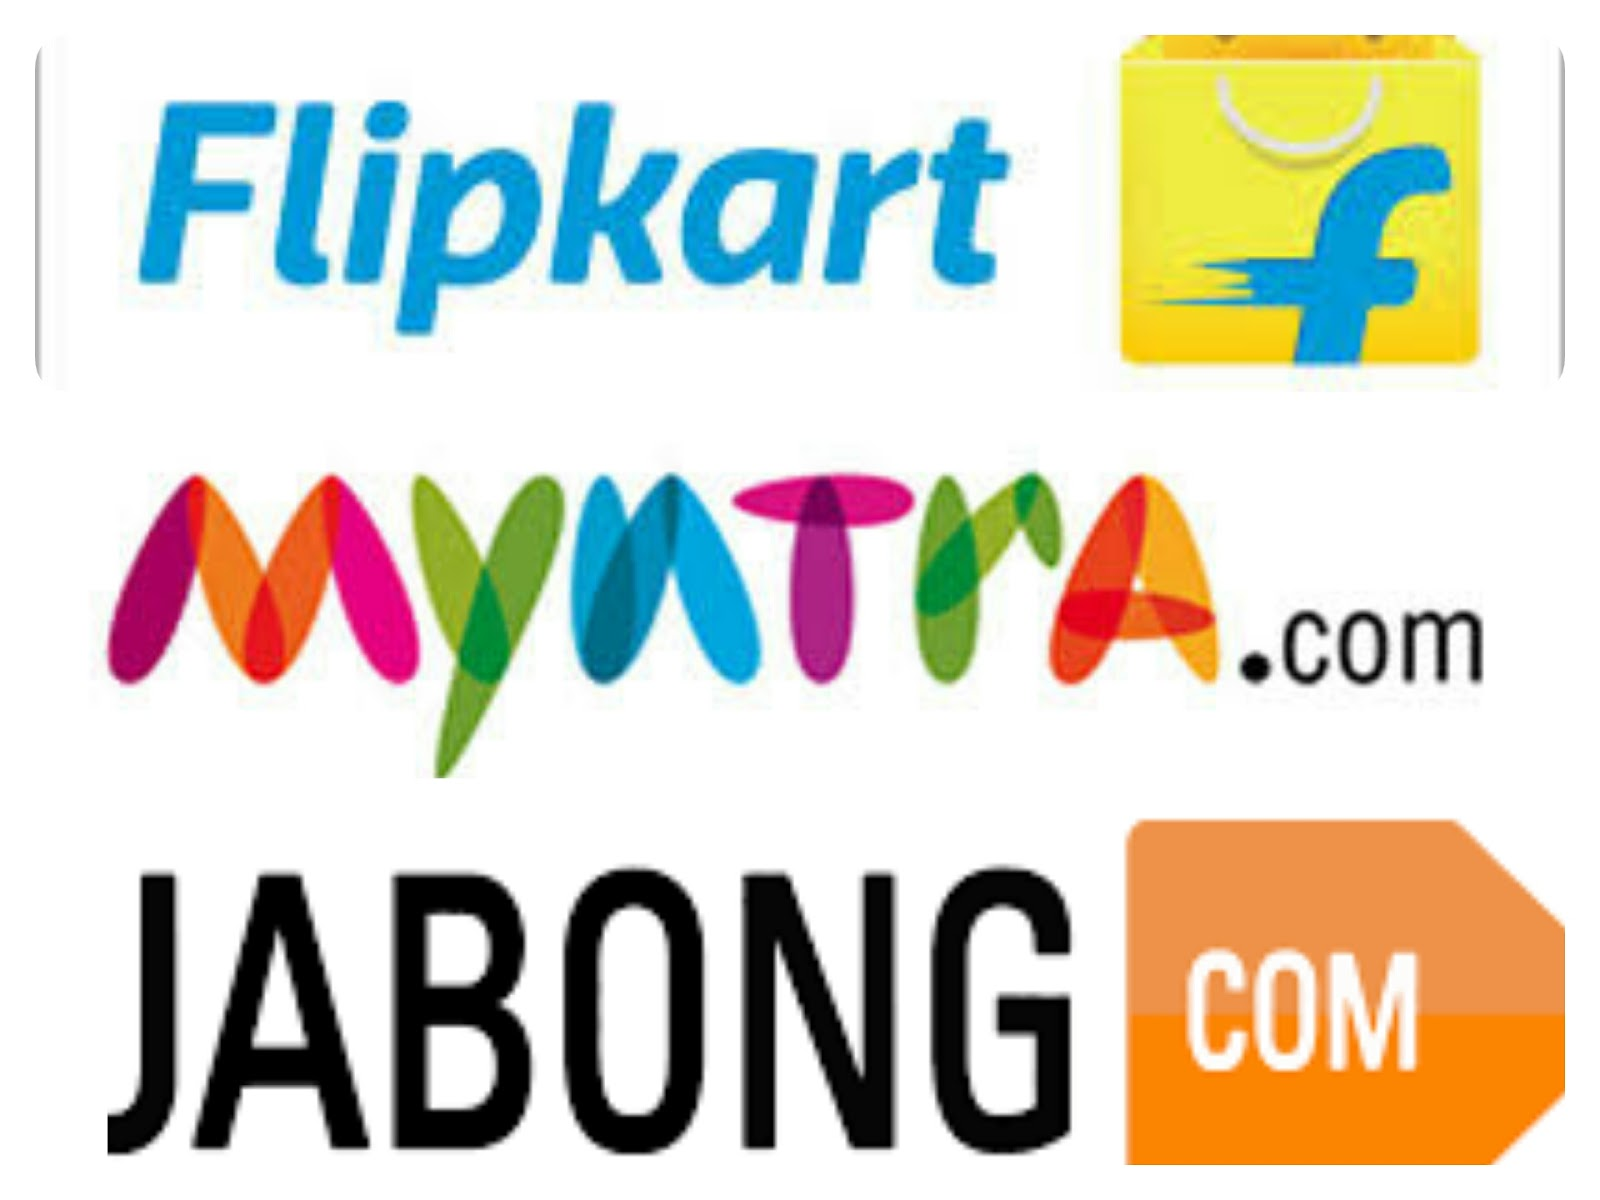 Myntra and Jabong to invest ₹20,600 crores in next three years